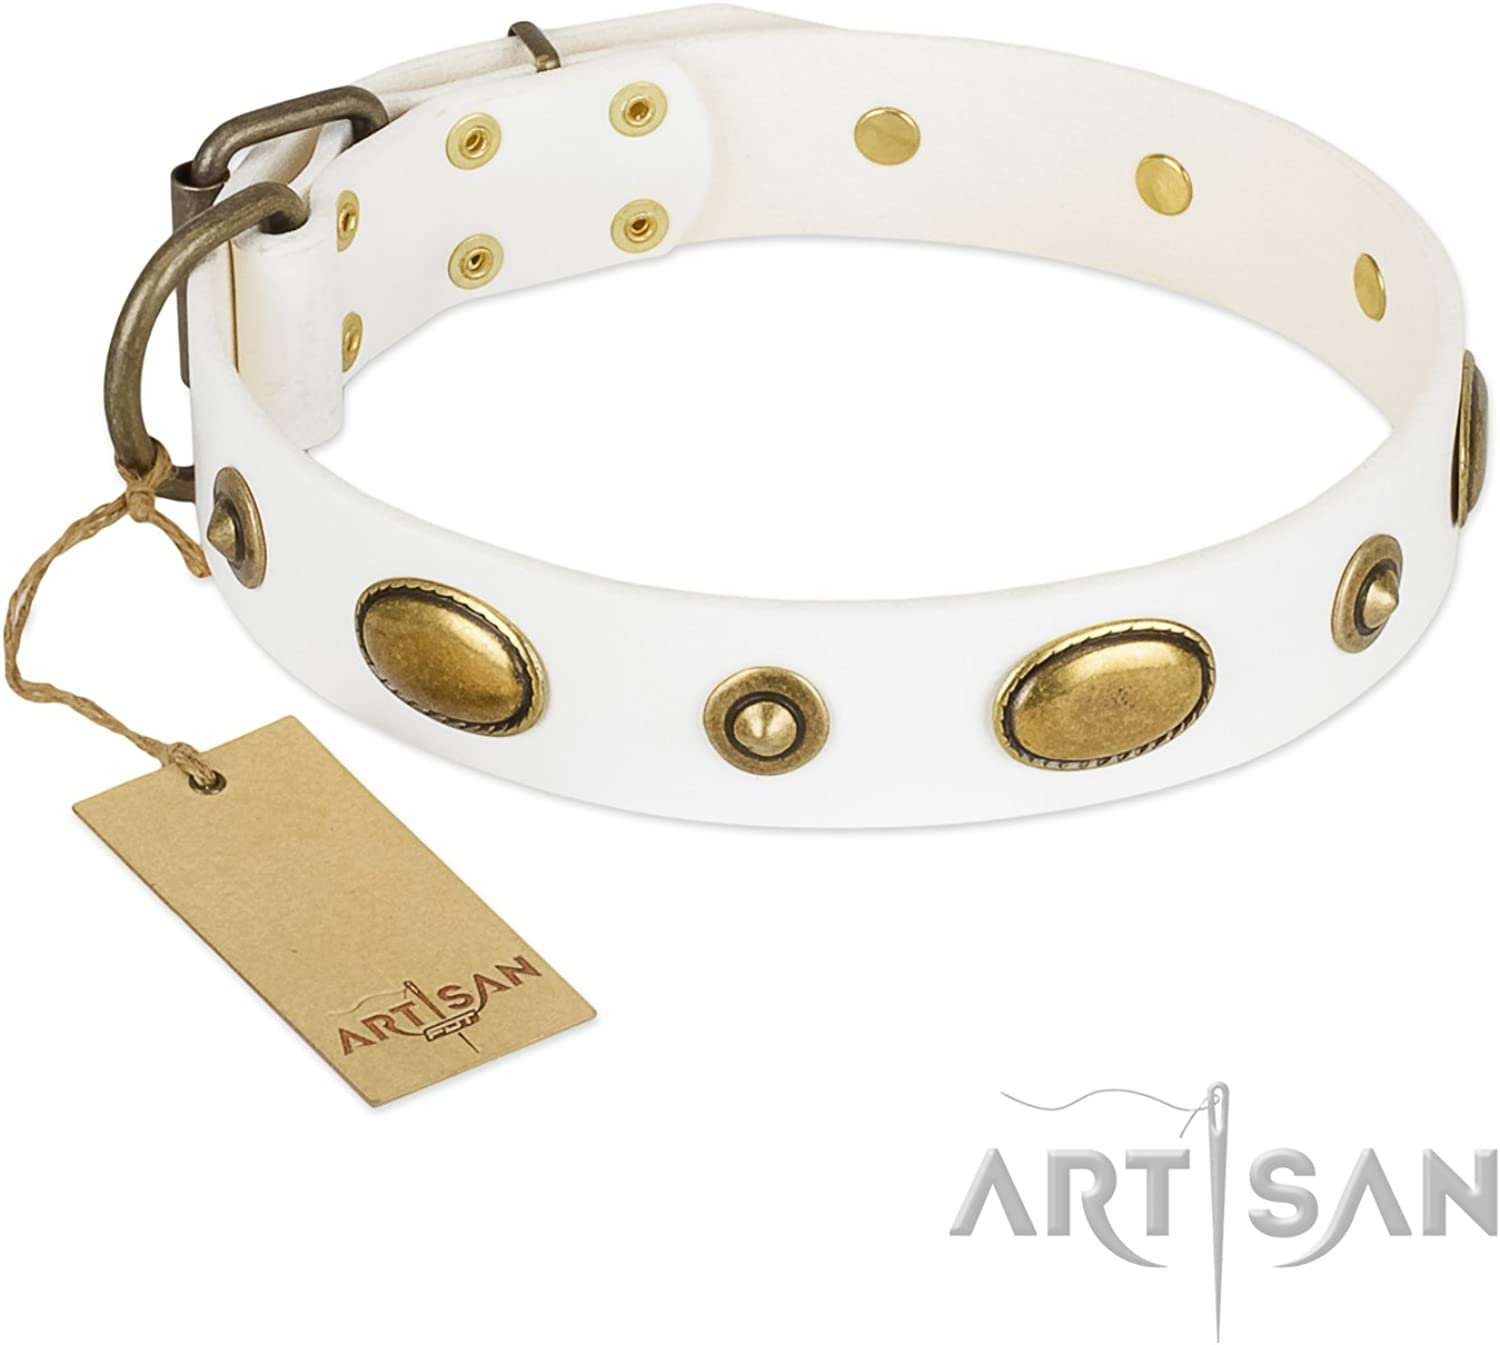 FDT Artisan 27 inch White Leather Dog Collar  Retro Temptation  Exclusive Handcrafted Item  1 1 2 inch (40 mm) Wide  Gift Box Included